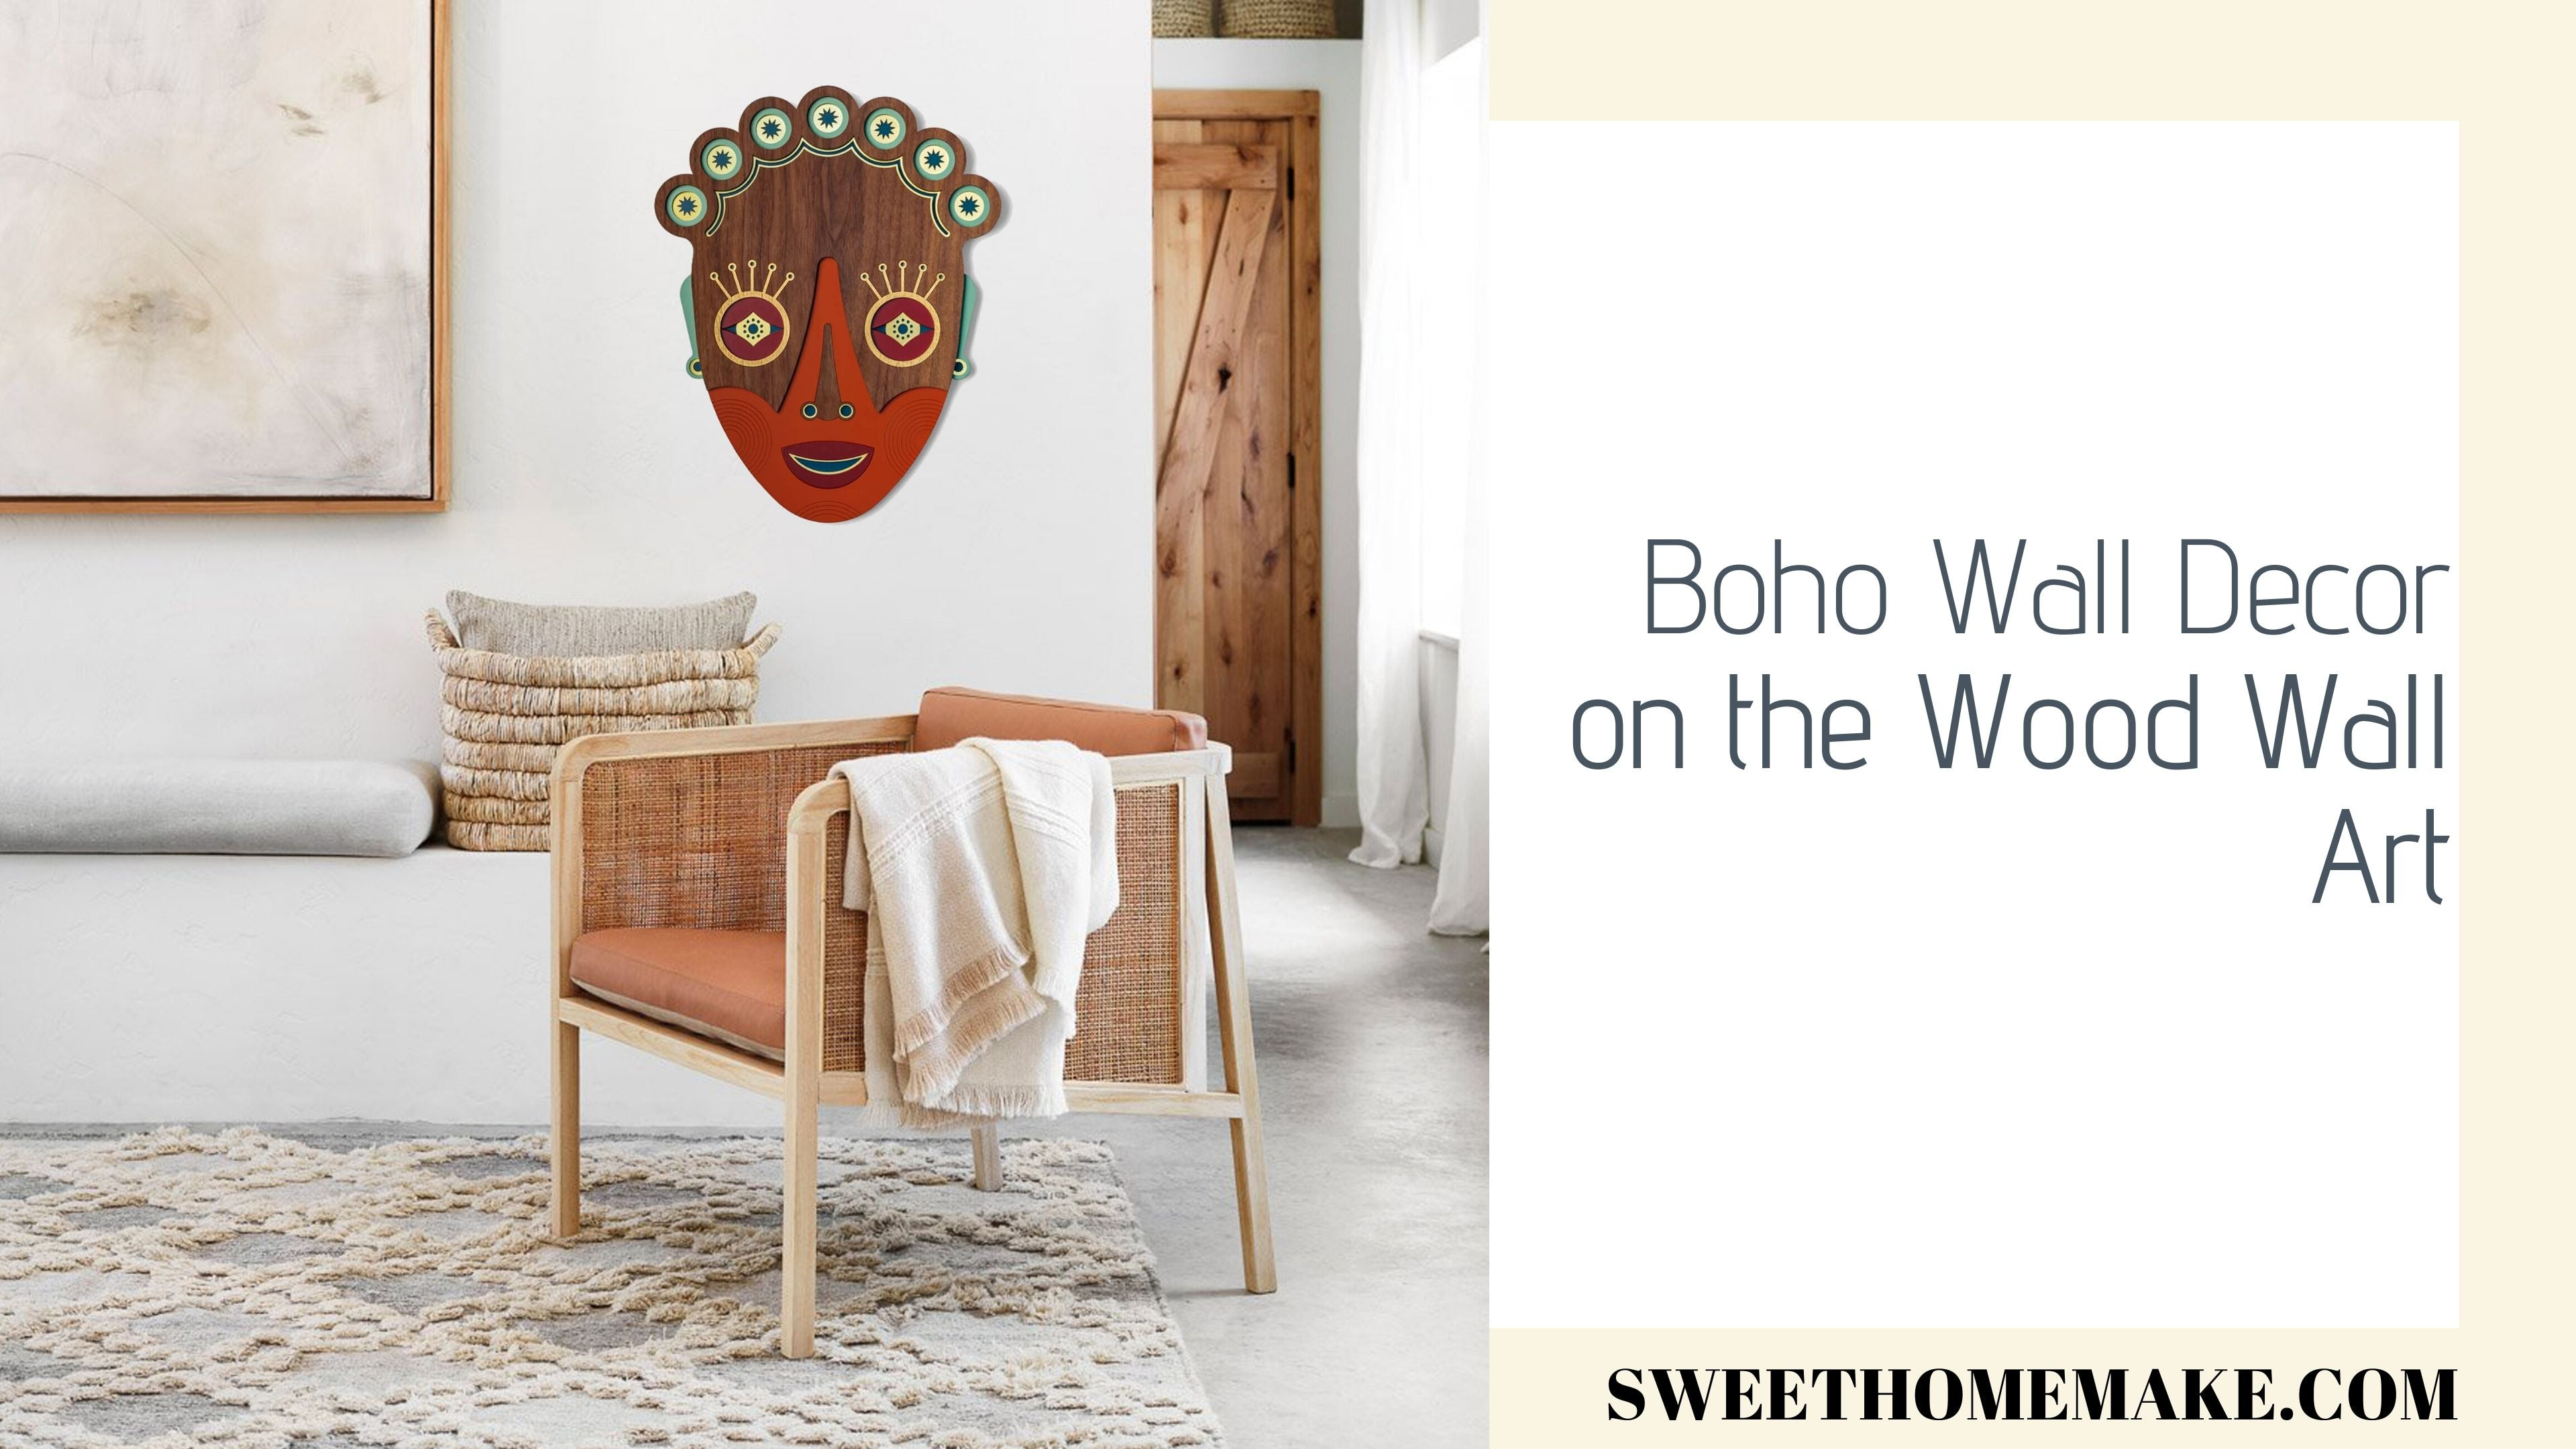 Boho Wall Decor on the the Wood Wall Art Hanging Mask